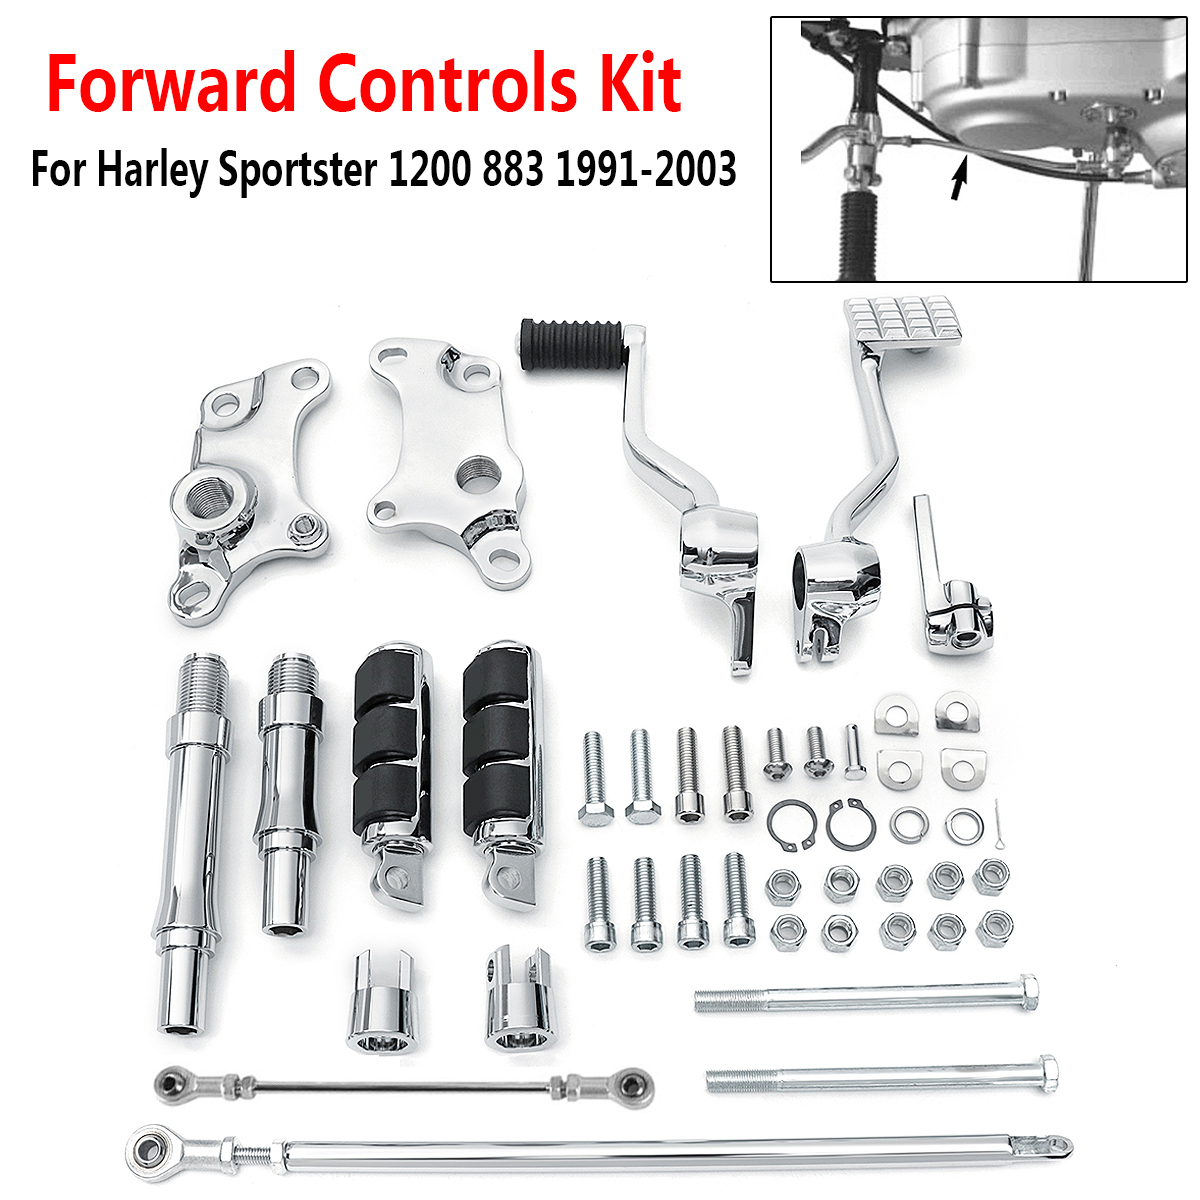 1991-2003 Forward Controls Pegs Levers Linkage Kit for Harley Sportster 1200 883 Foot Rests gloss black forward controls edge cut pegs levers linkages for harley xl 883 1200 2014up